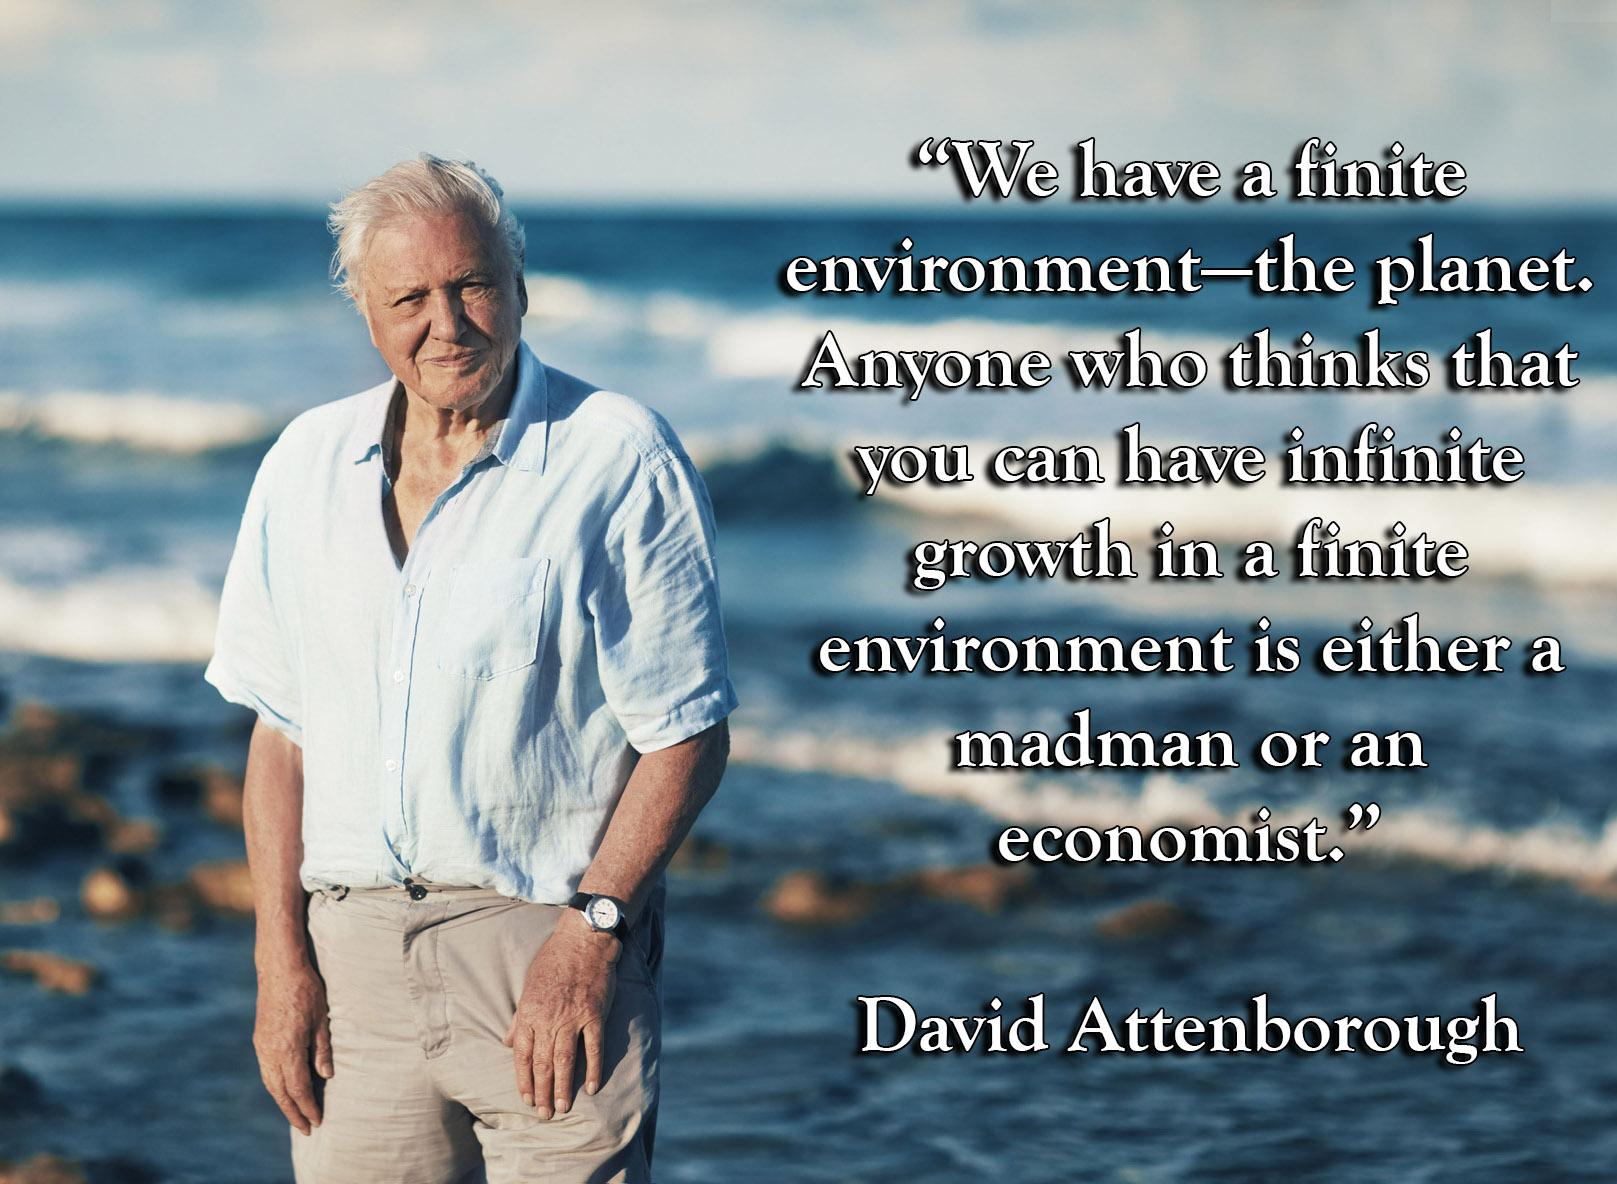 """We have a finite environment—the planet. Anyone who thinks that you can have infinite growth in a finite environment is either a madman or an economist."" – David Attenborough[1617 × 1184]"